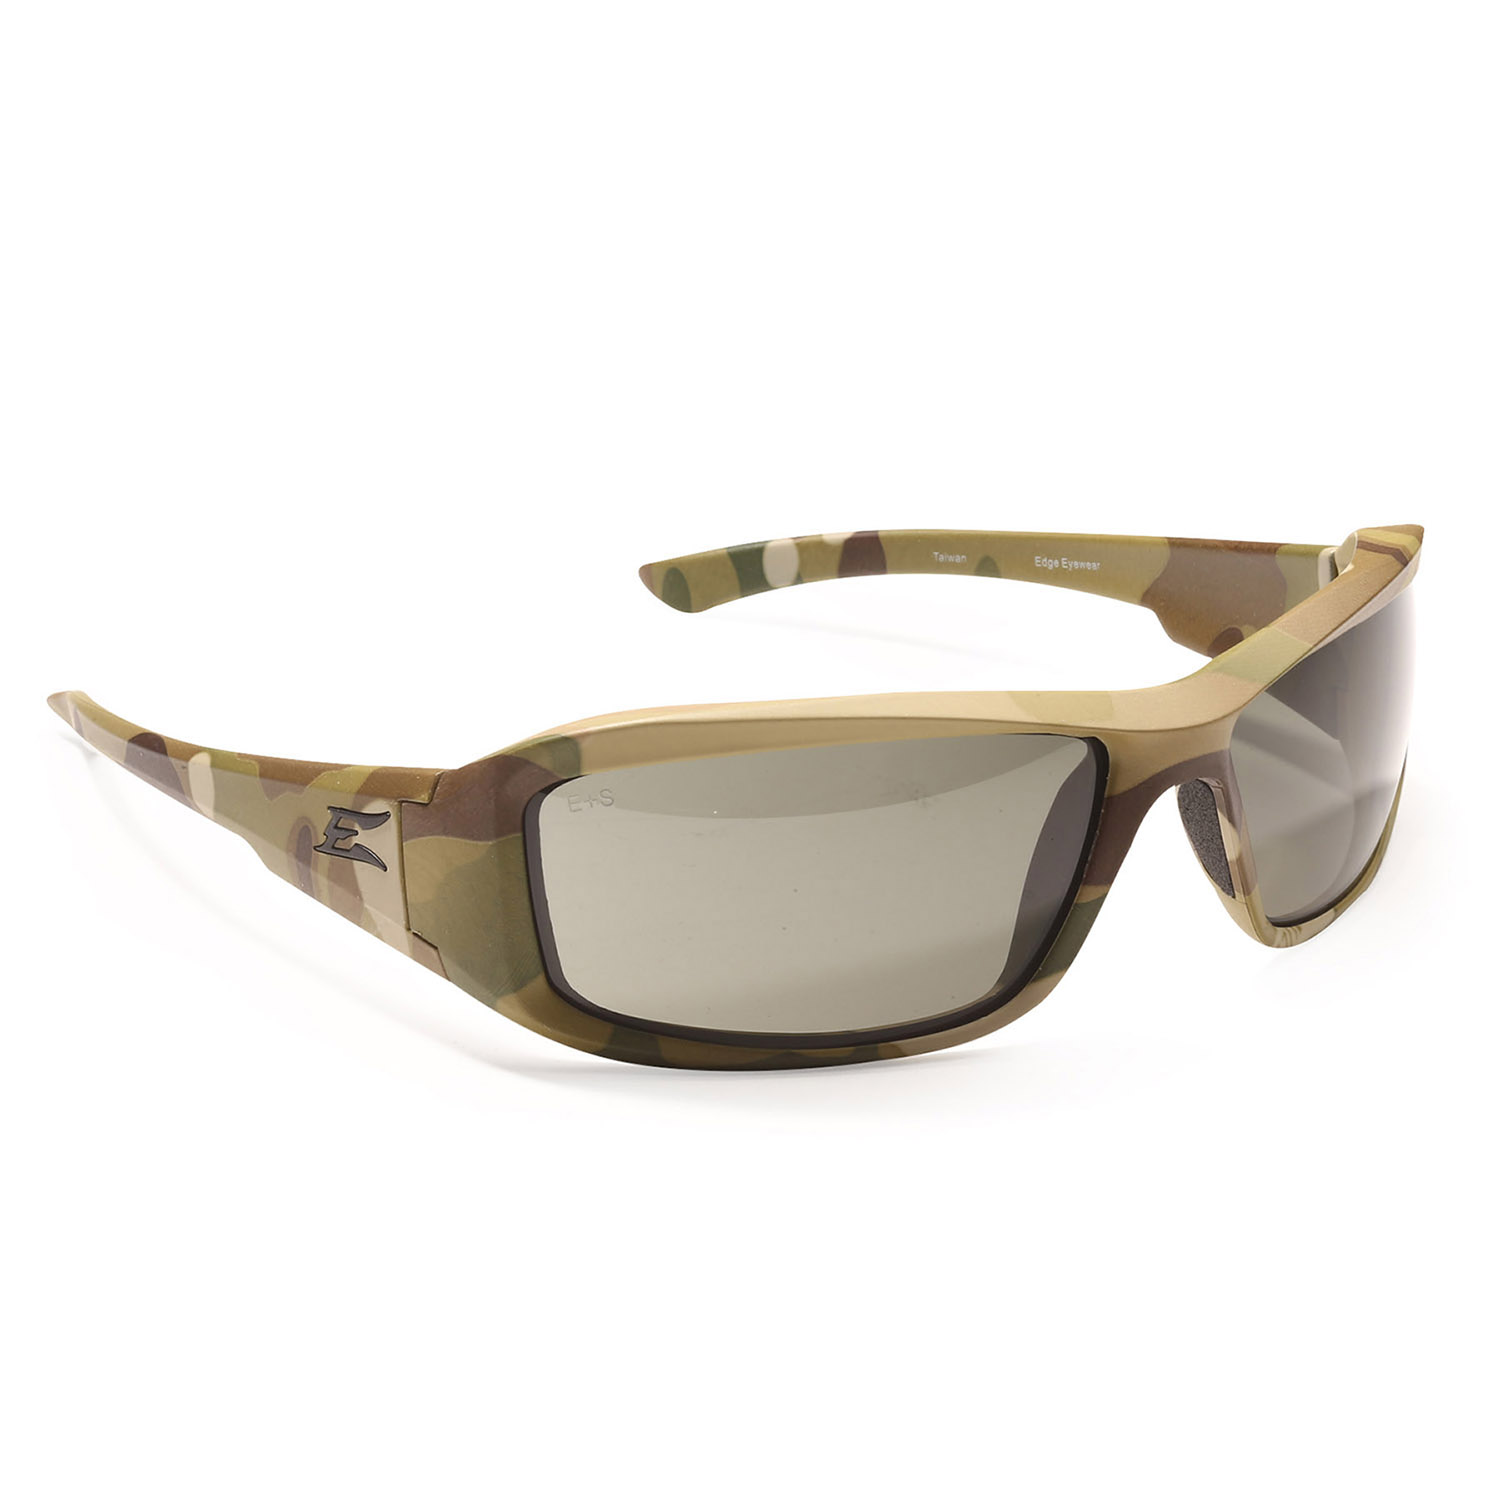 Edge Eyewear Hamel MultiCam Sunglasses with G-15 Lenses